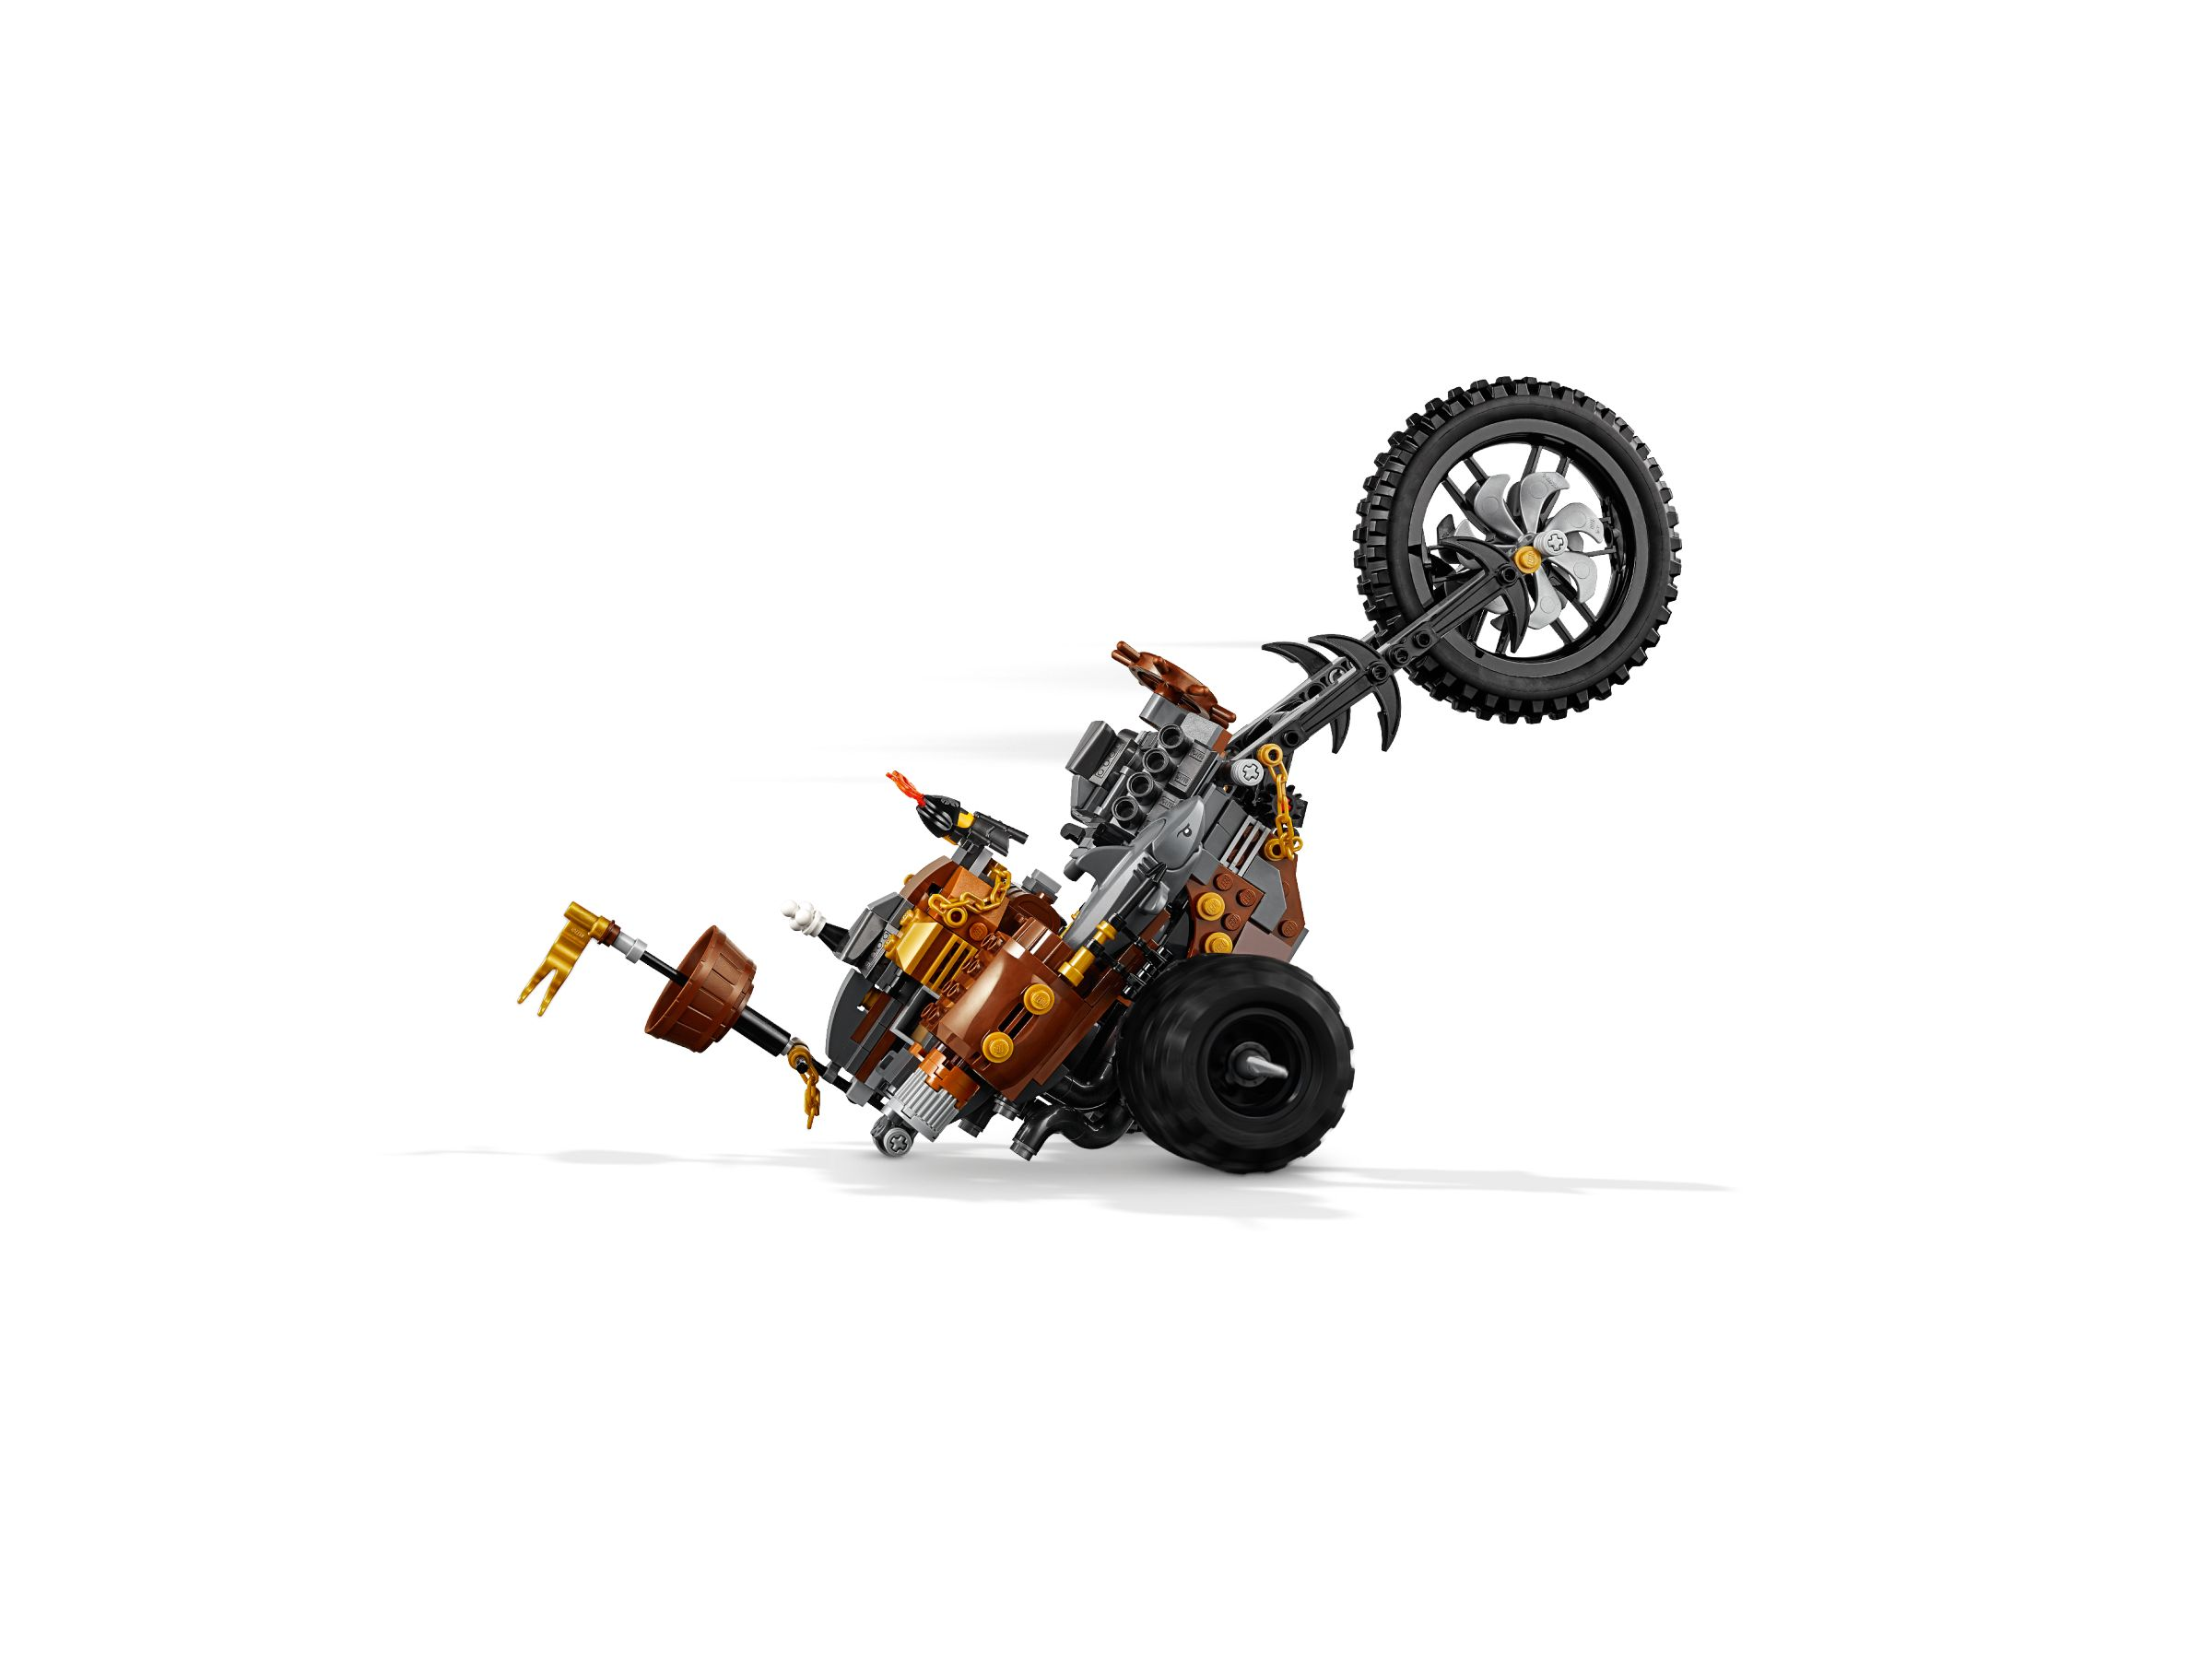 LEGO The LEGO Movie 2 70834 Eisenbarts Heavy-Metal-Trike! LEGO_70834_alt3.jpg